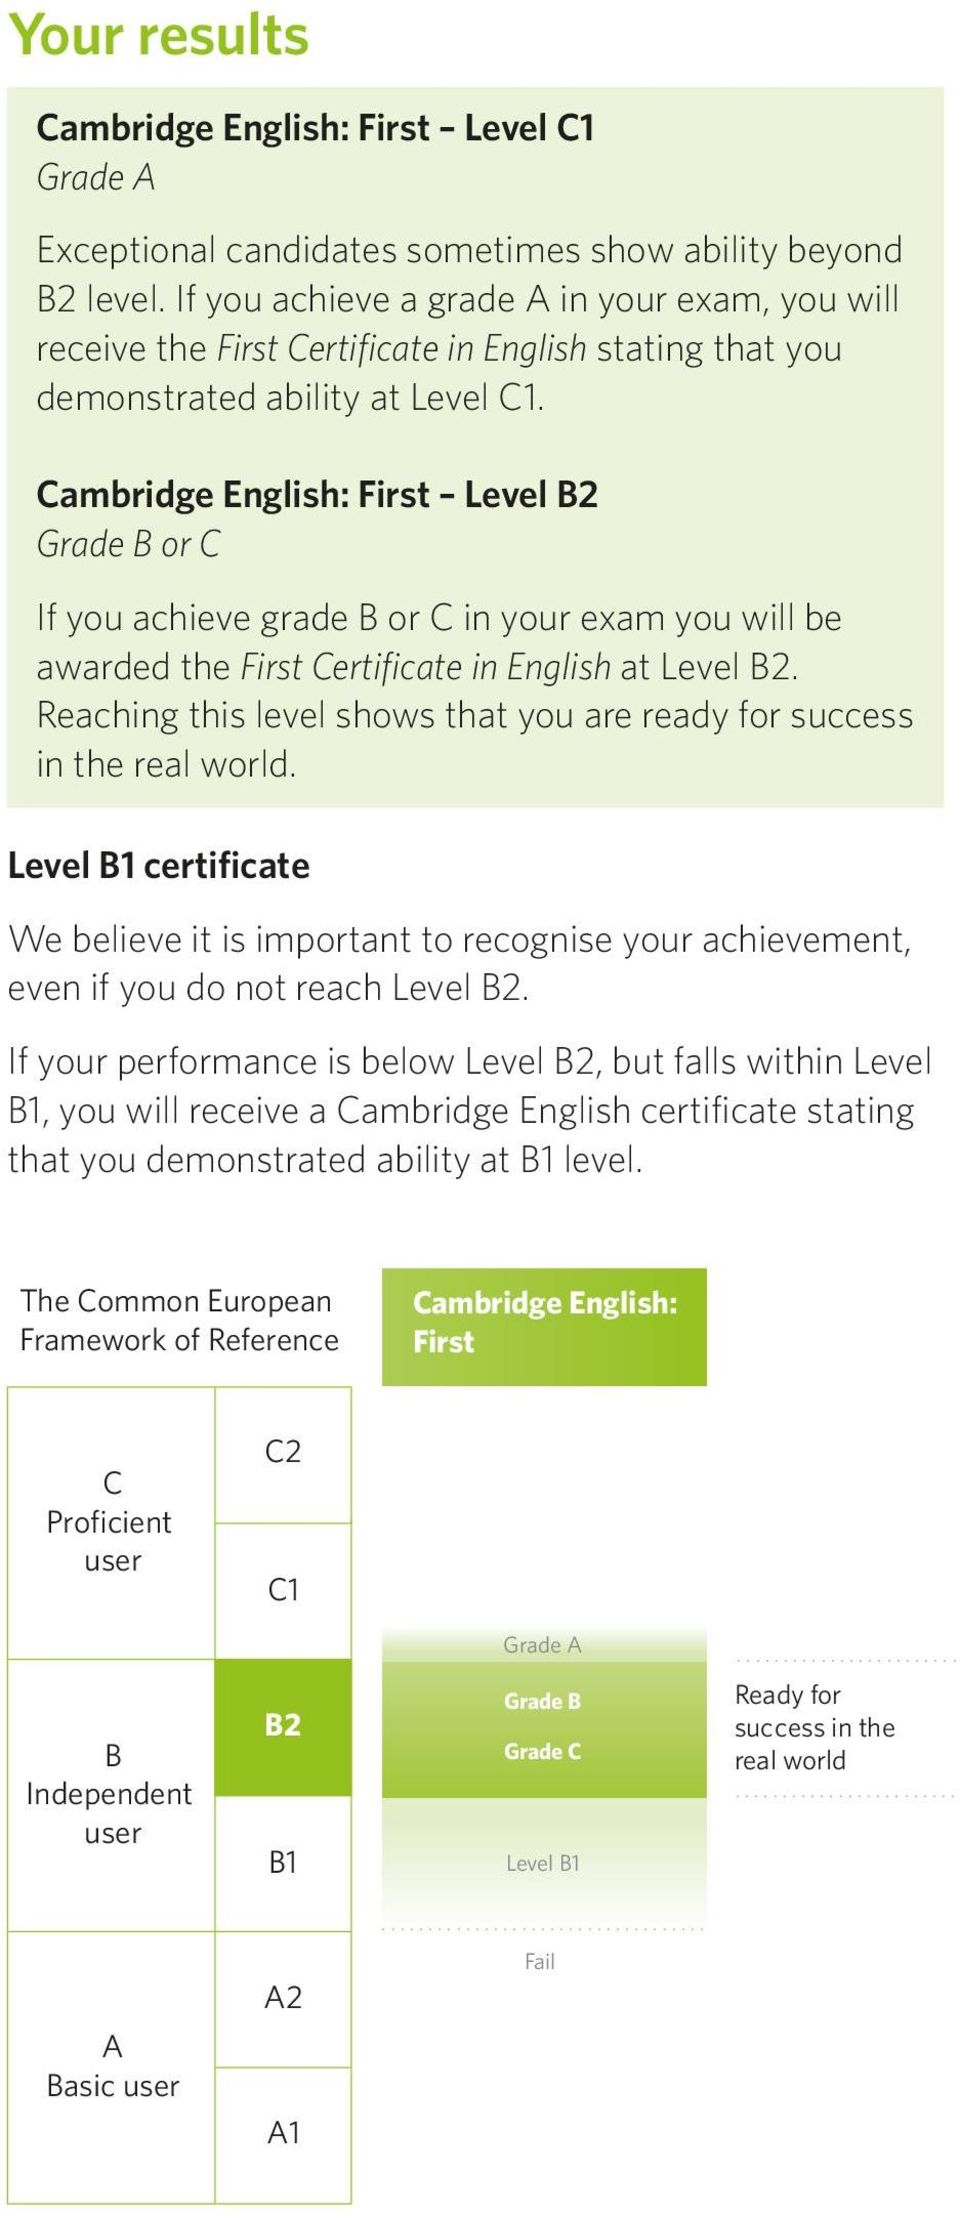 Cambridge English: First Level B2 Grade B or C If you achieve grade B or C in your exam you will be awarded the First Certificate in English at Level B2.